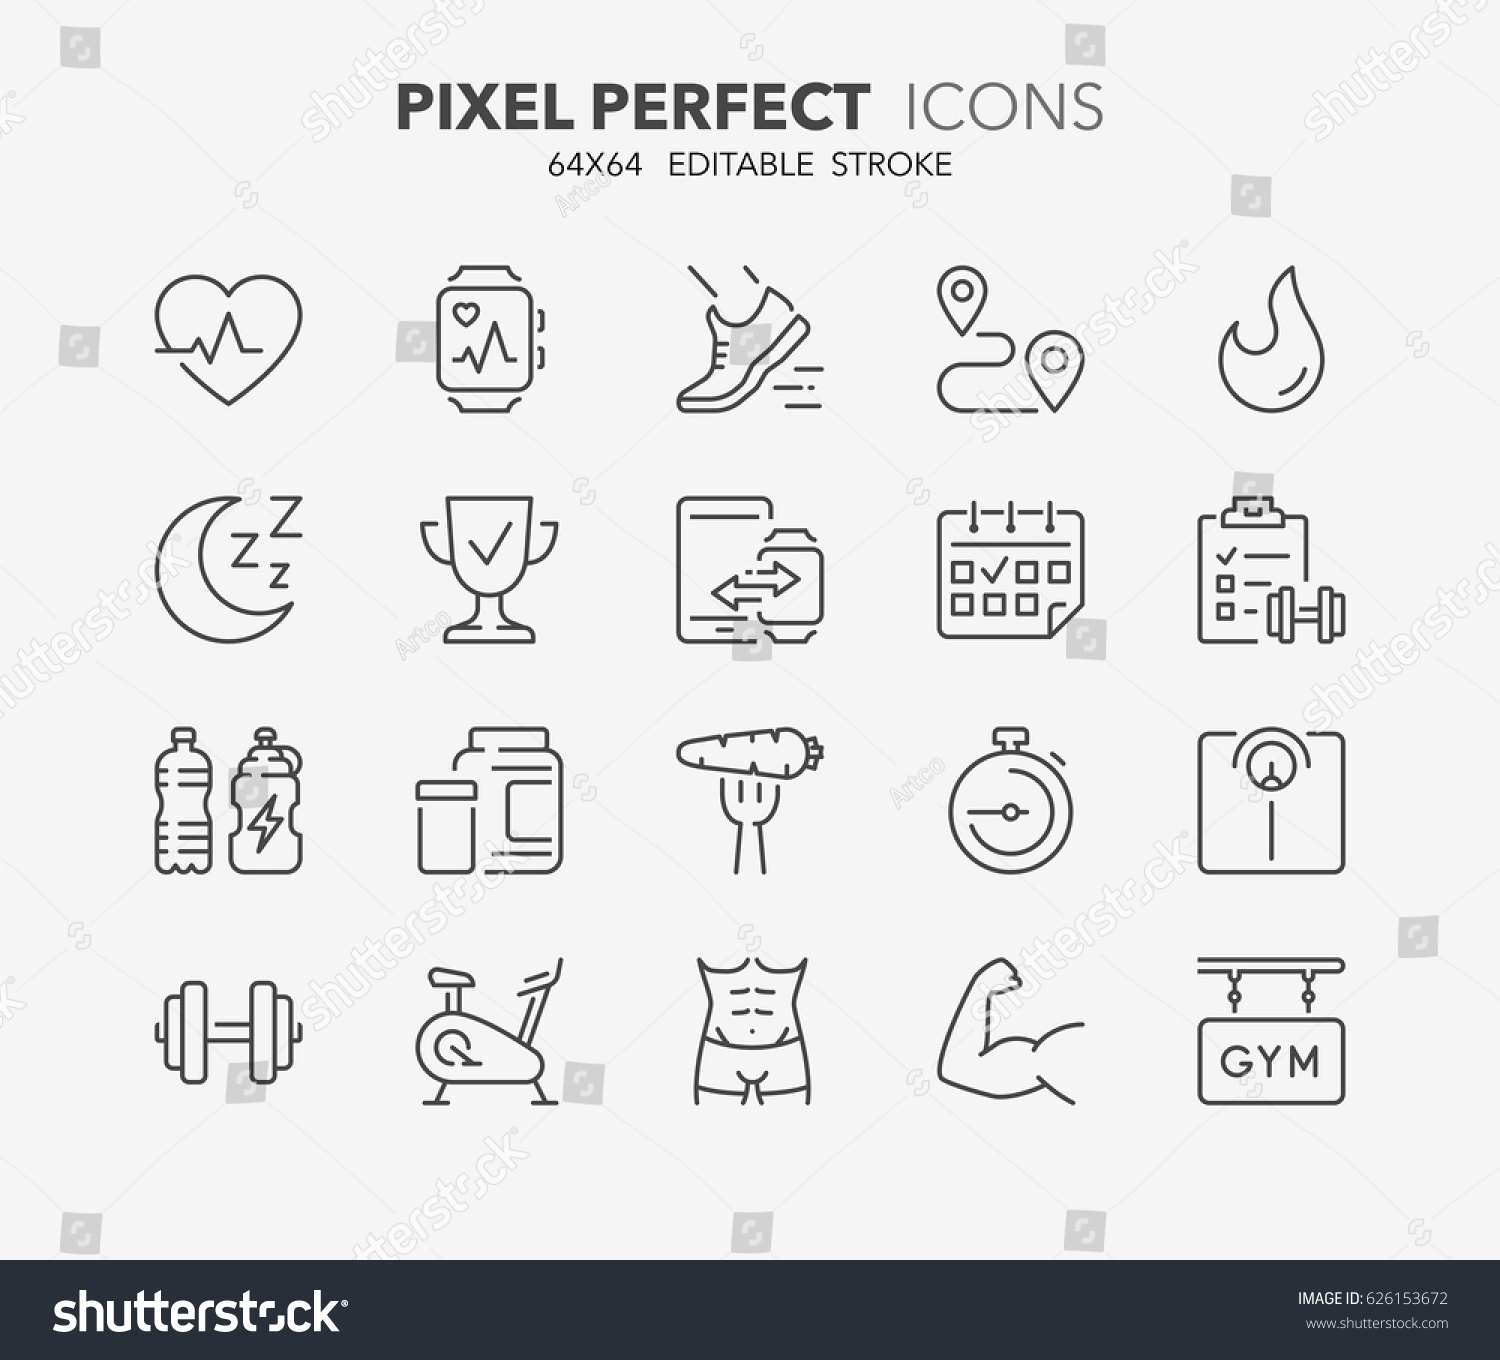 Thin line icons set of fitness, gym and health care. Outline symbol collection. Editable vector stroke. 64x64 Pixel Perfect.